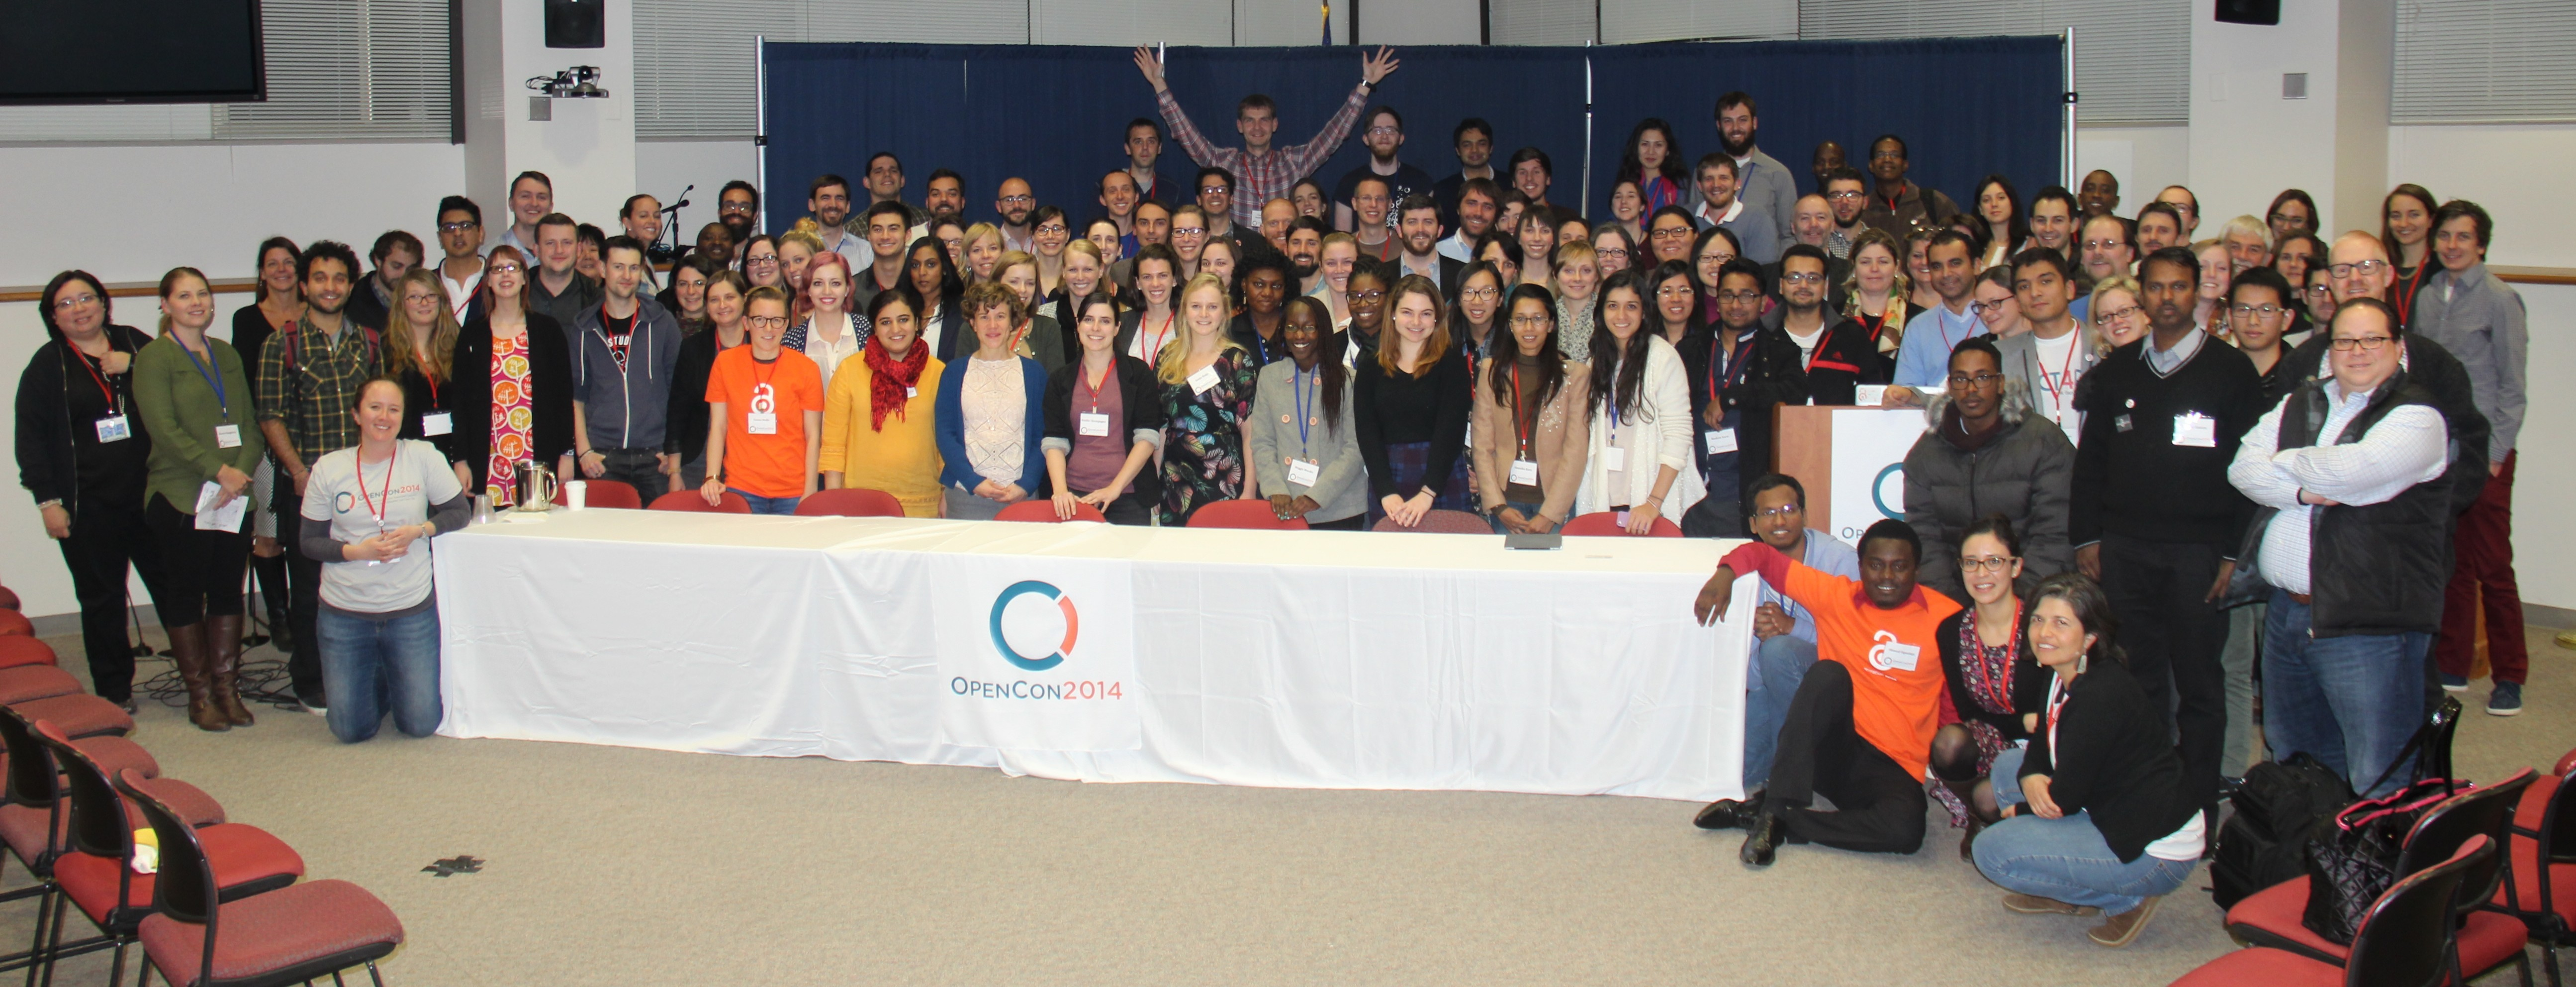 OpenCon 2014 group photo. Credit: Aloysius Wilfred Raj, CC BY.